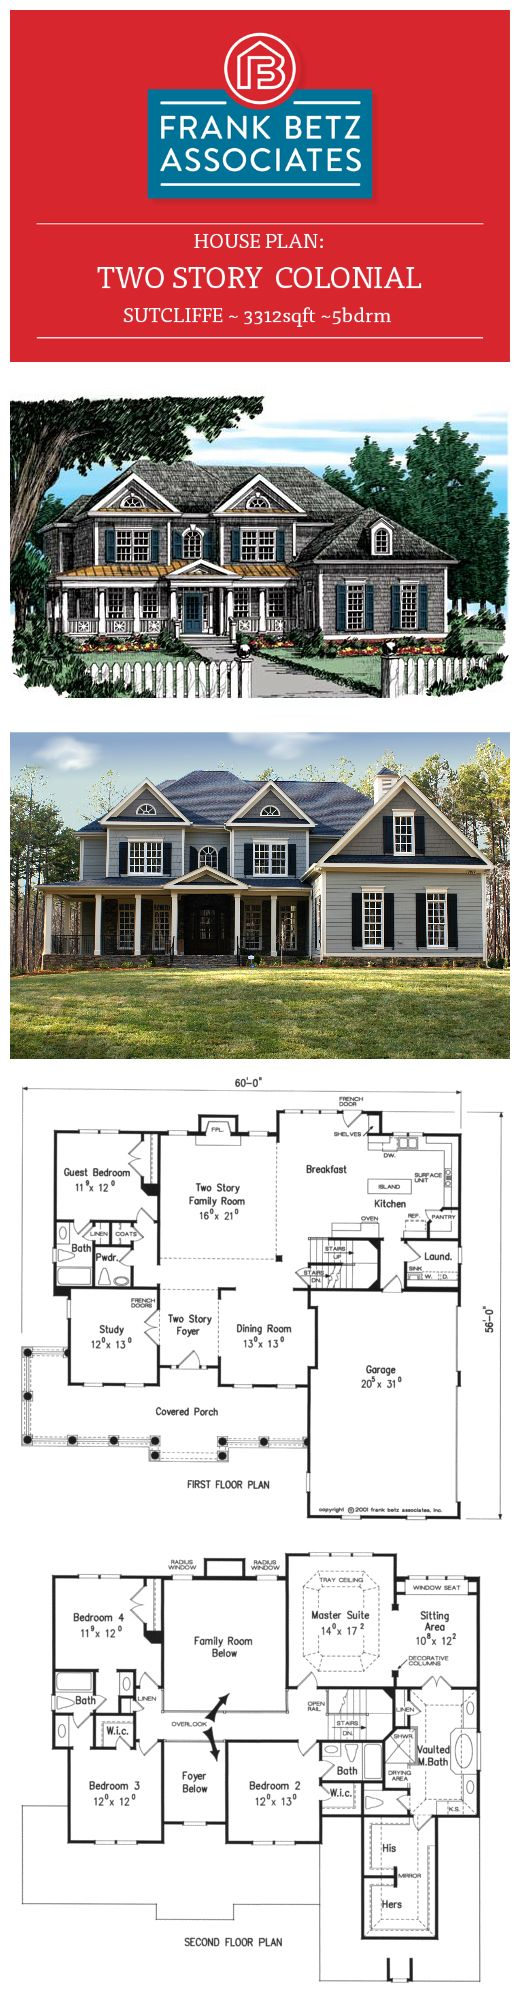 Sutcliffe: 3312sqft|5bdrm two-story Colonial house plan by Frank Betz Associates Inc.  ~ Great pin! For Oahu architectural design